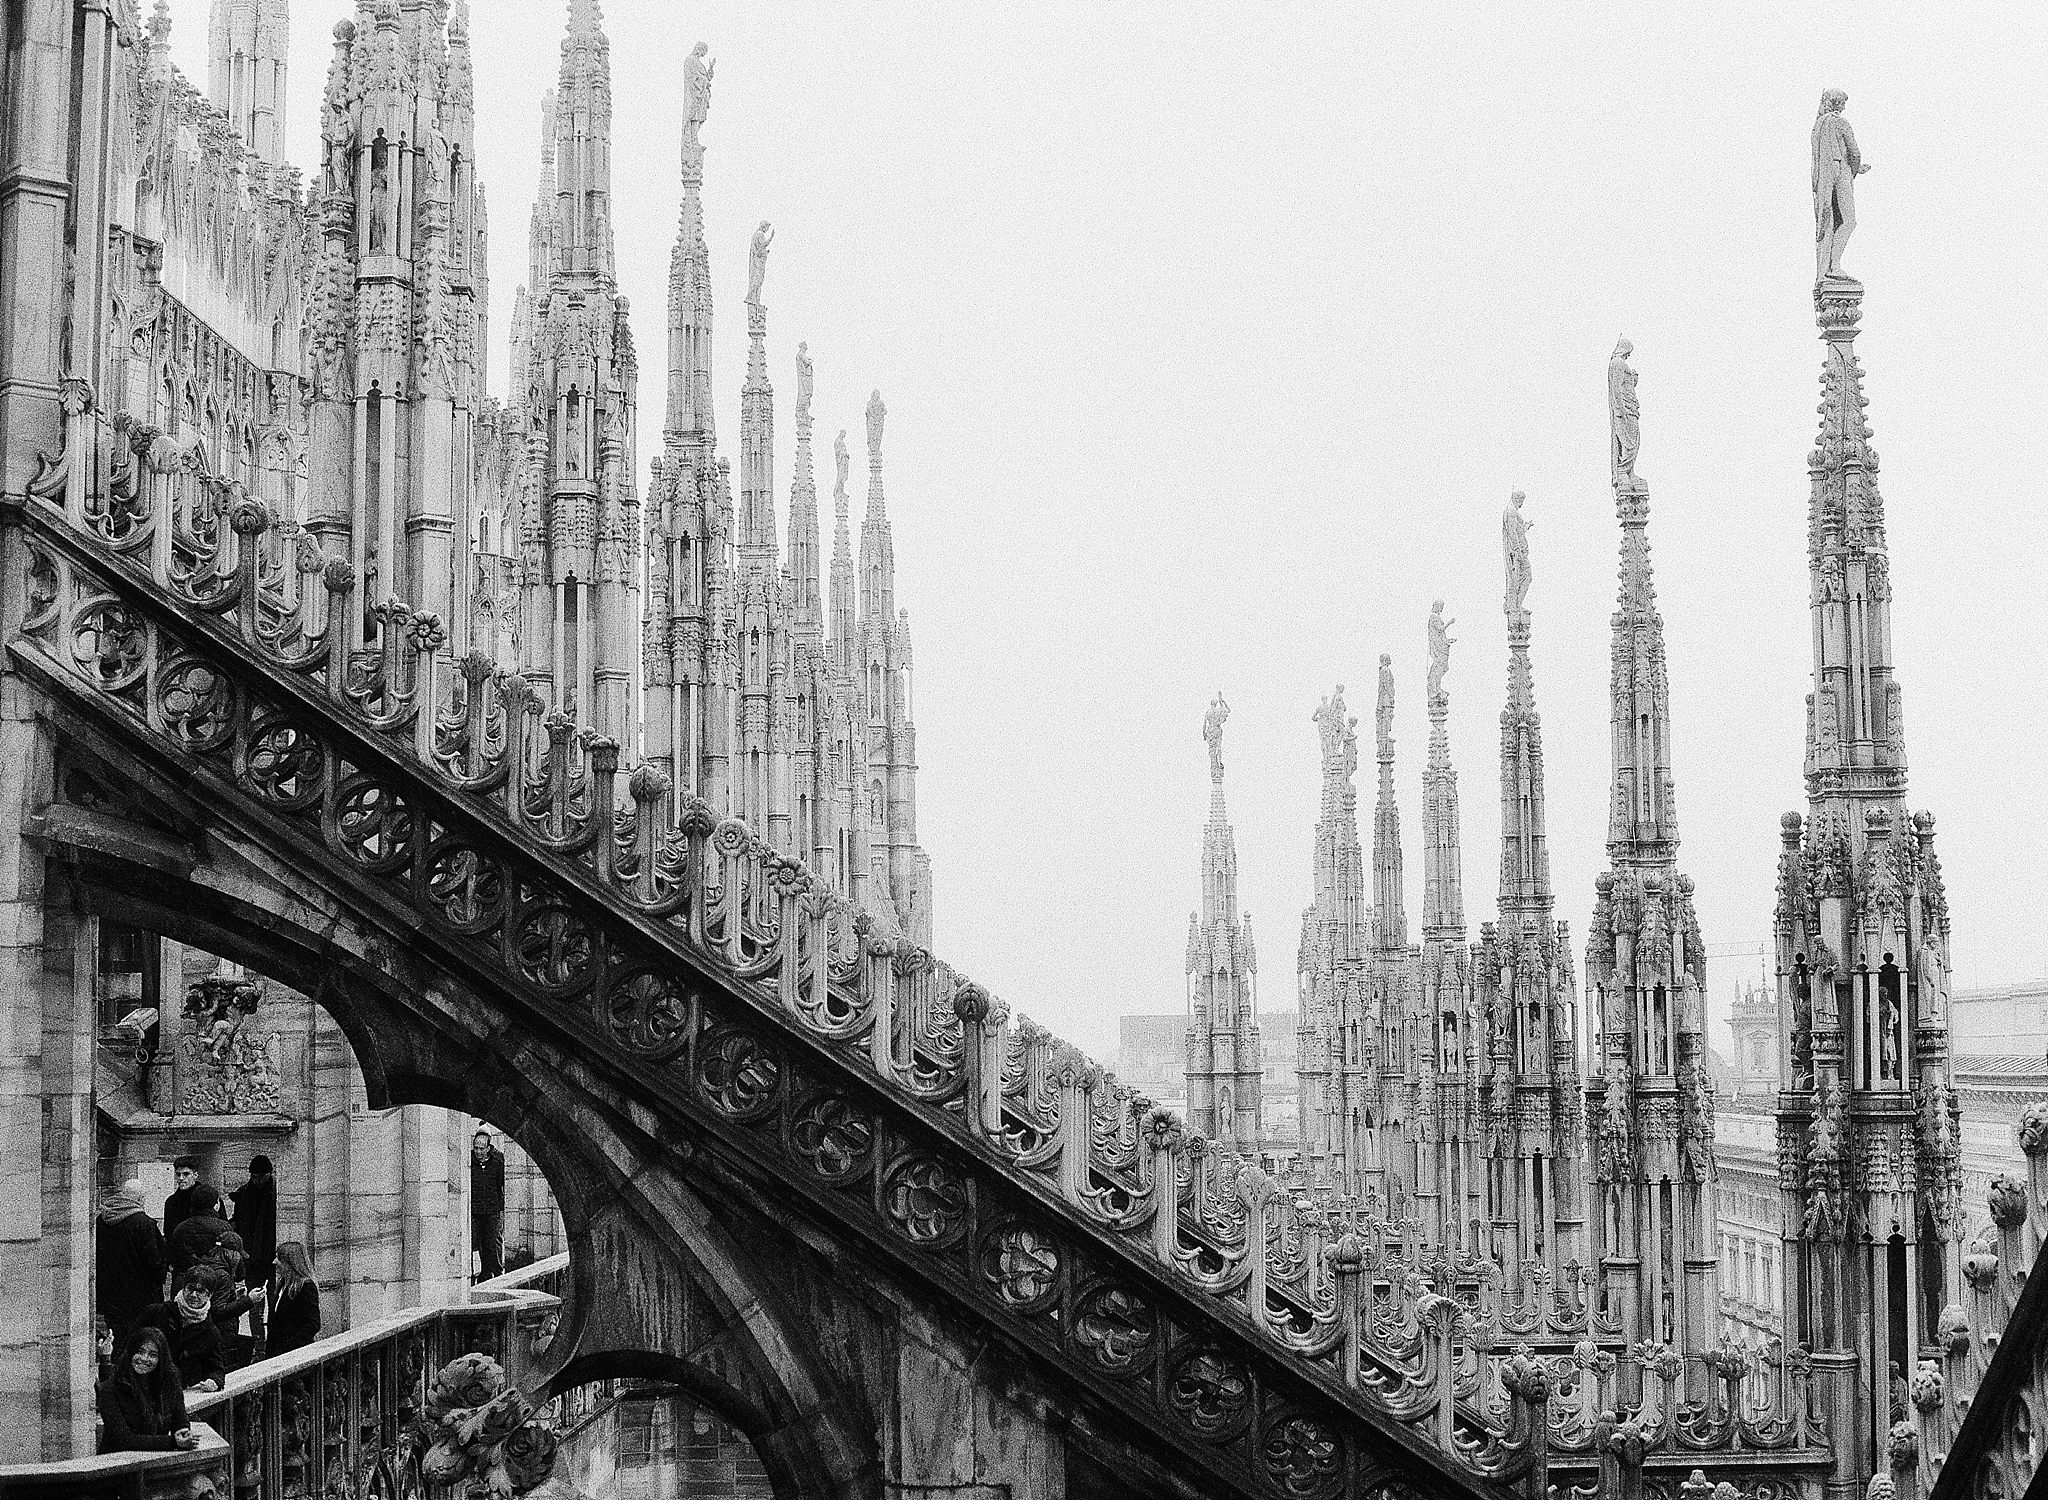 Milan, Italy - March 2018